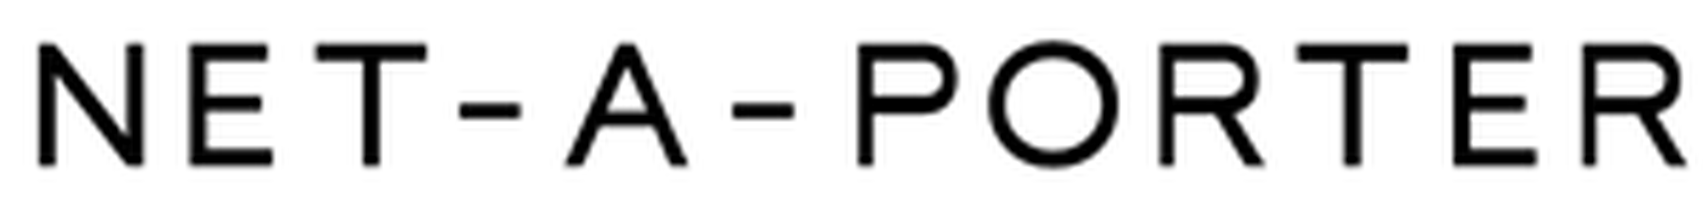 Net A Porter Promo Codes: Up to 70% off